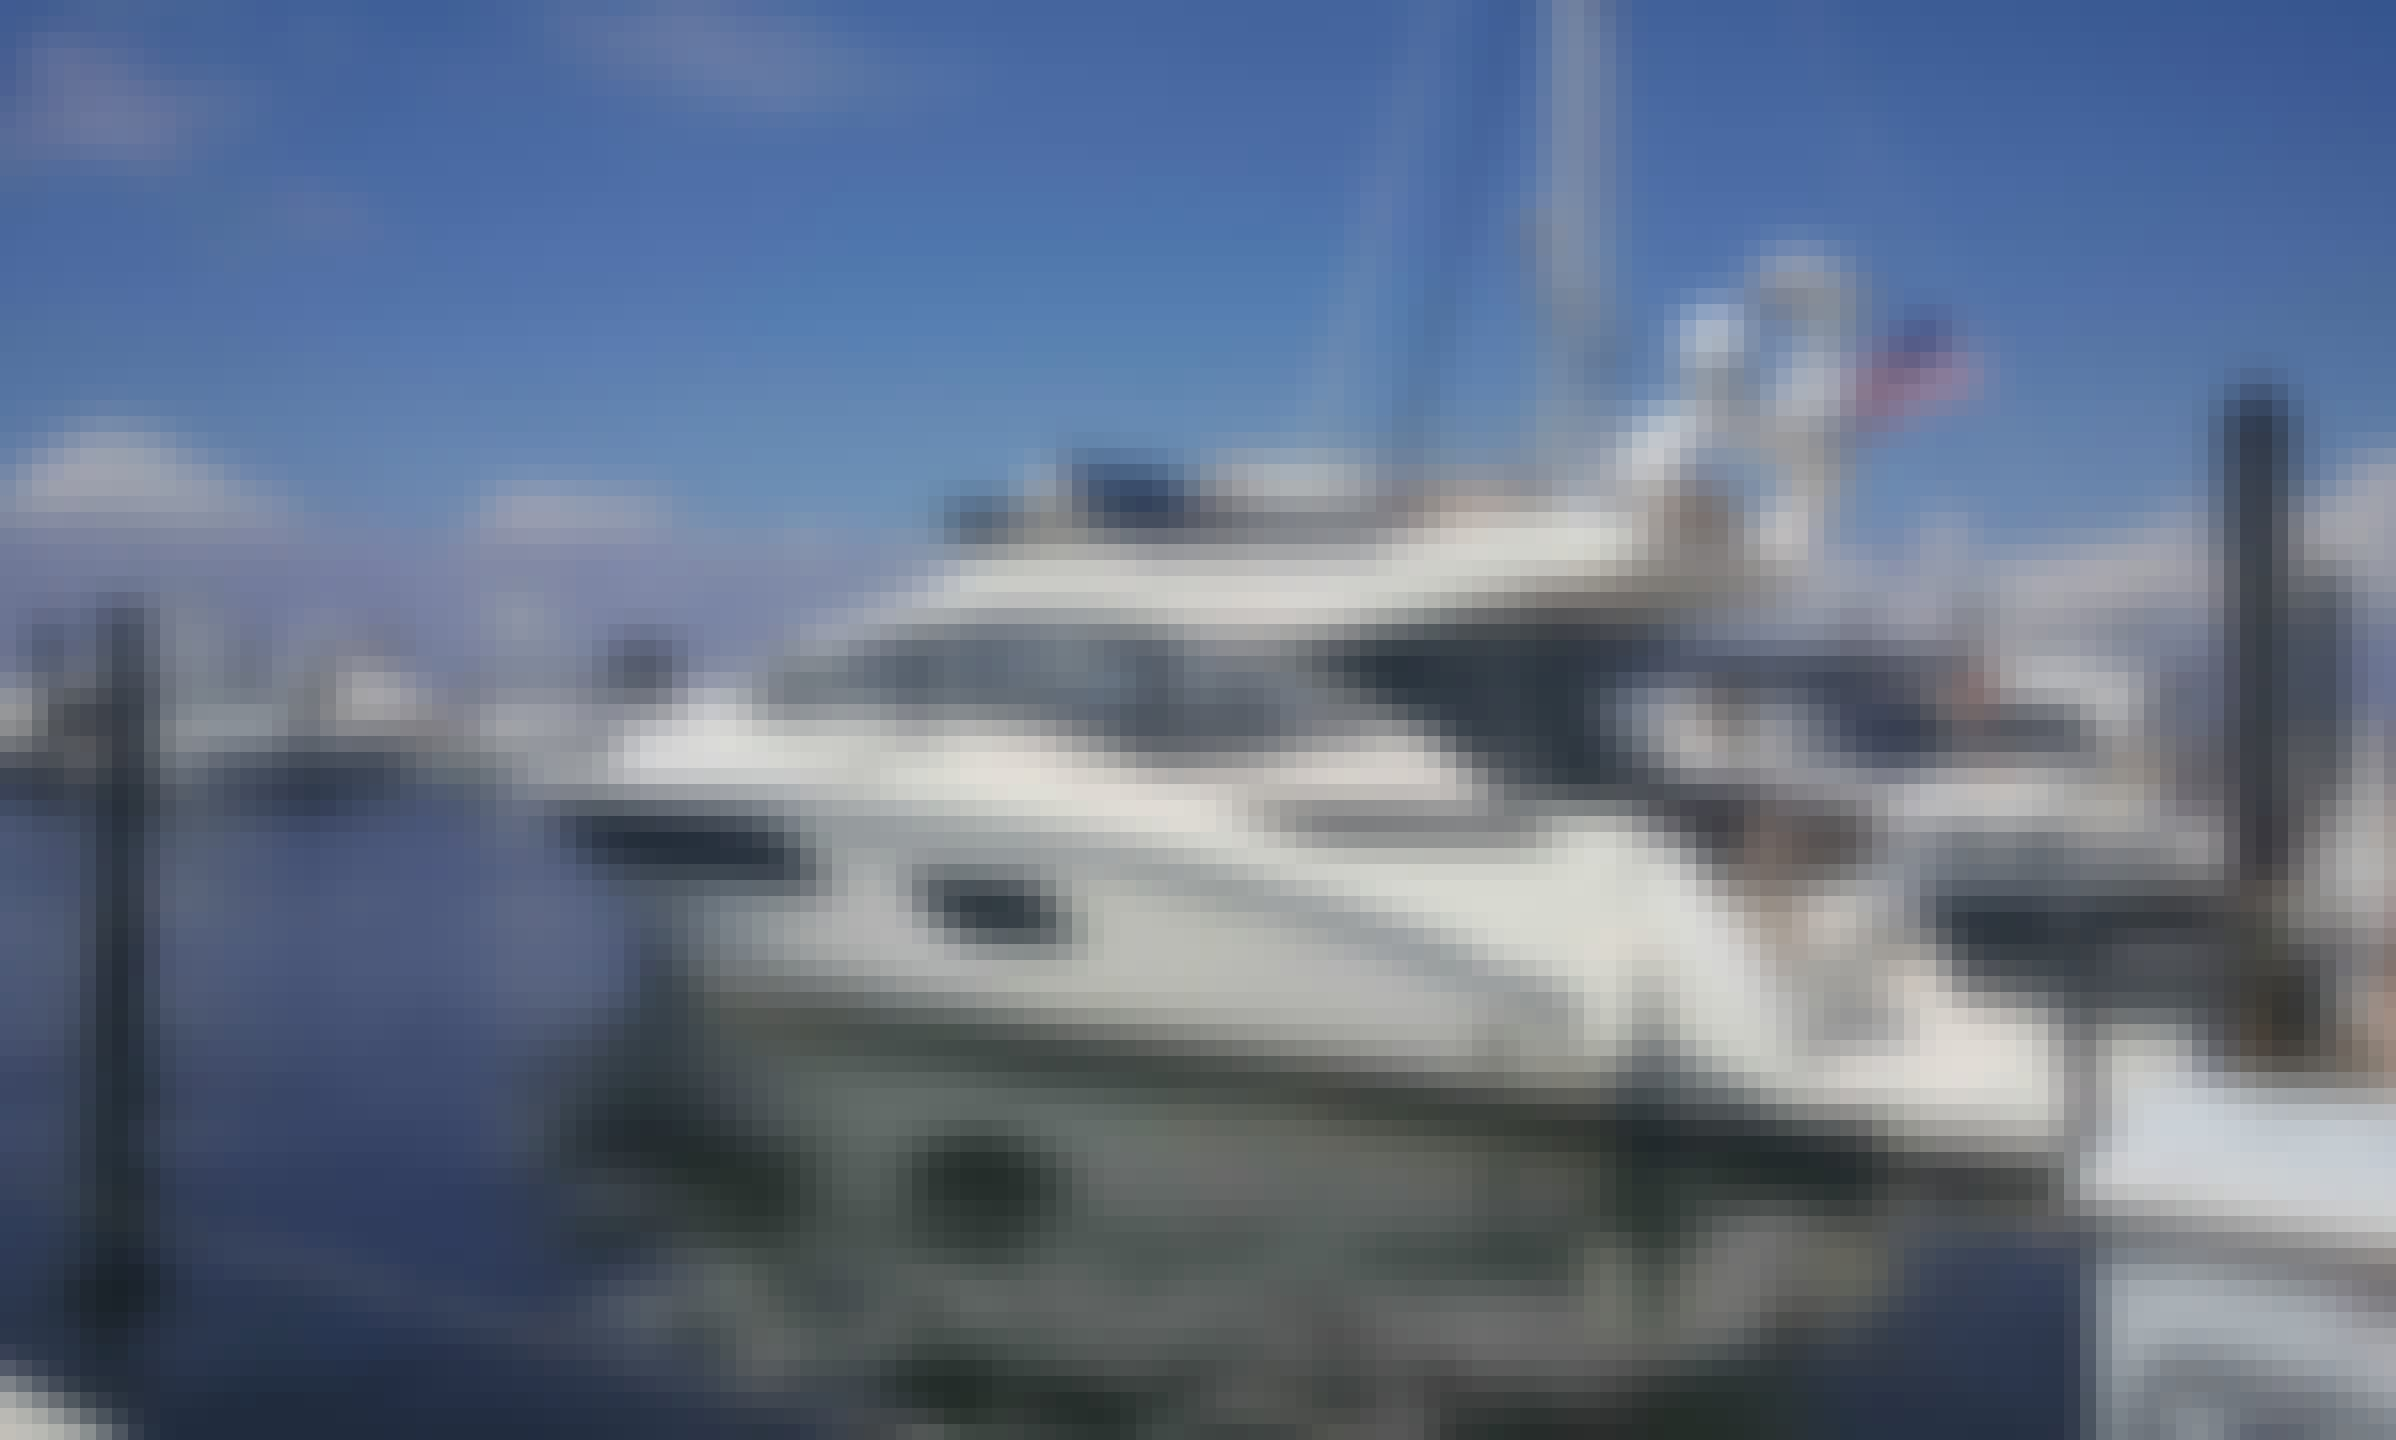 2019 45' Motor Yacht Charter available in Atlantic Highlands, New Jersey